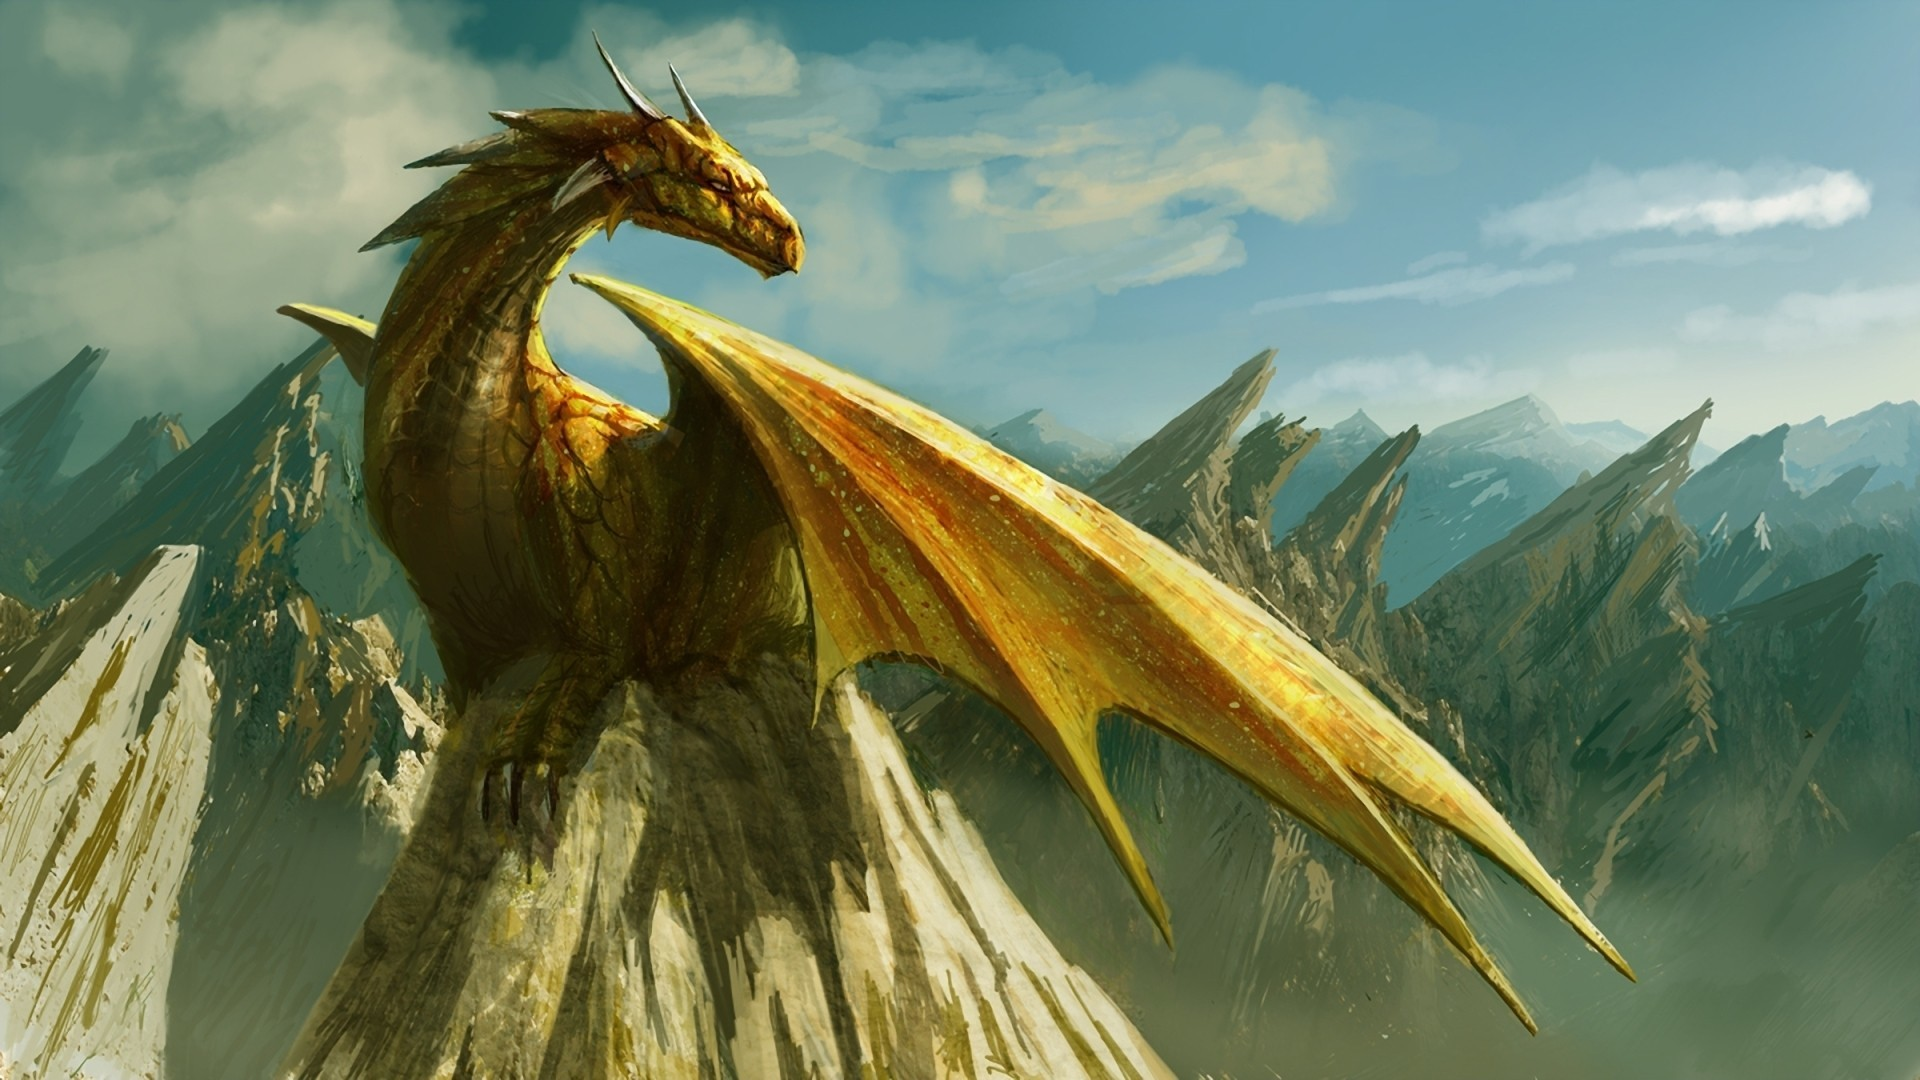 fantasy wings Dragons artwork HD Wallpaper